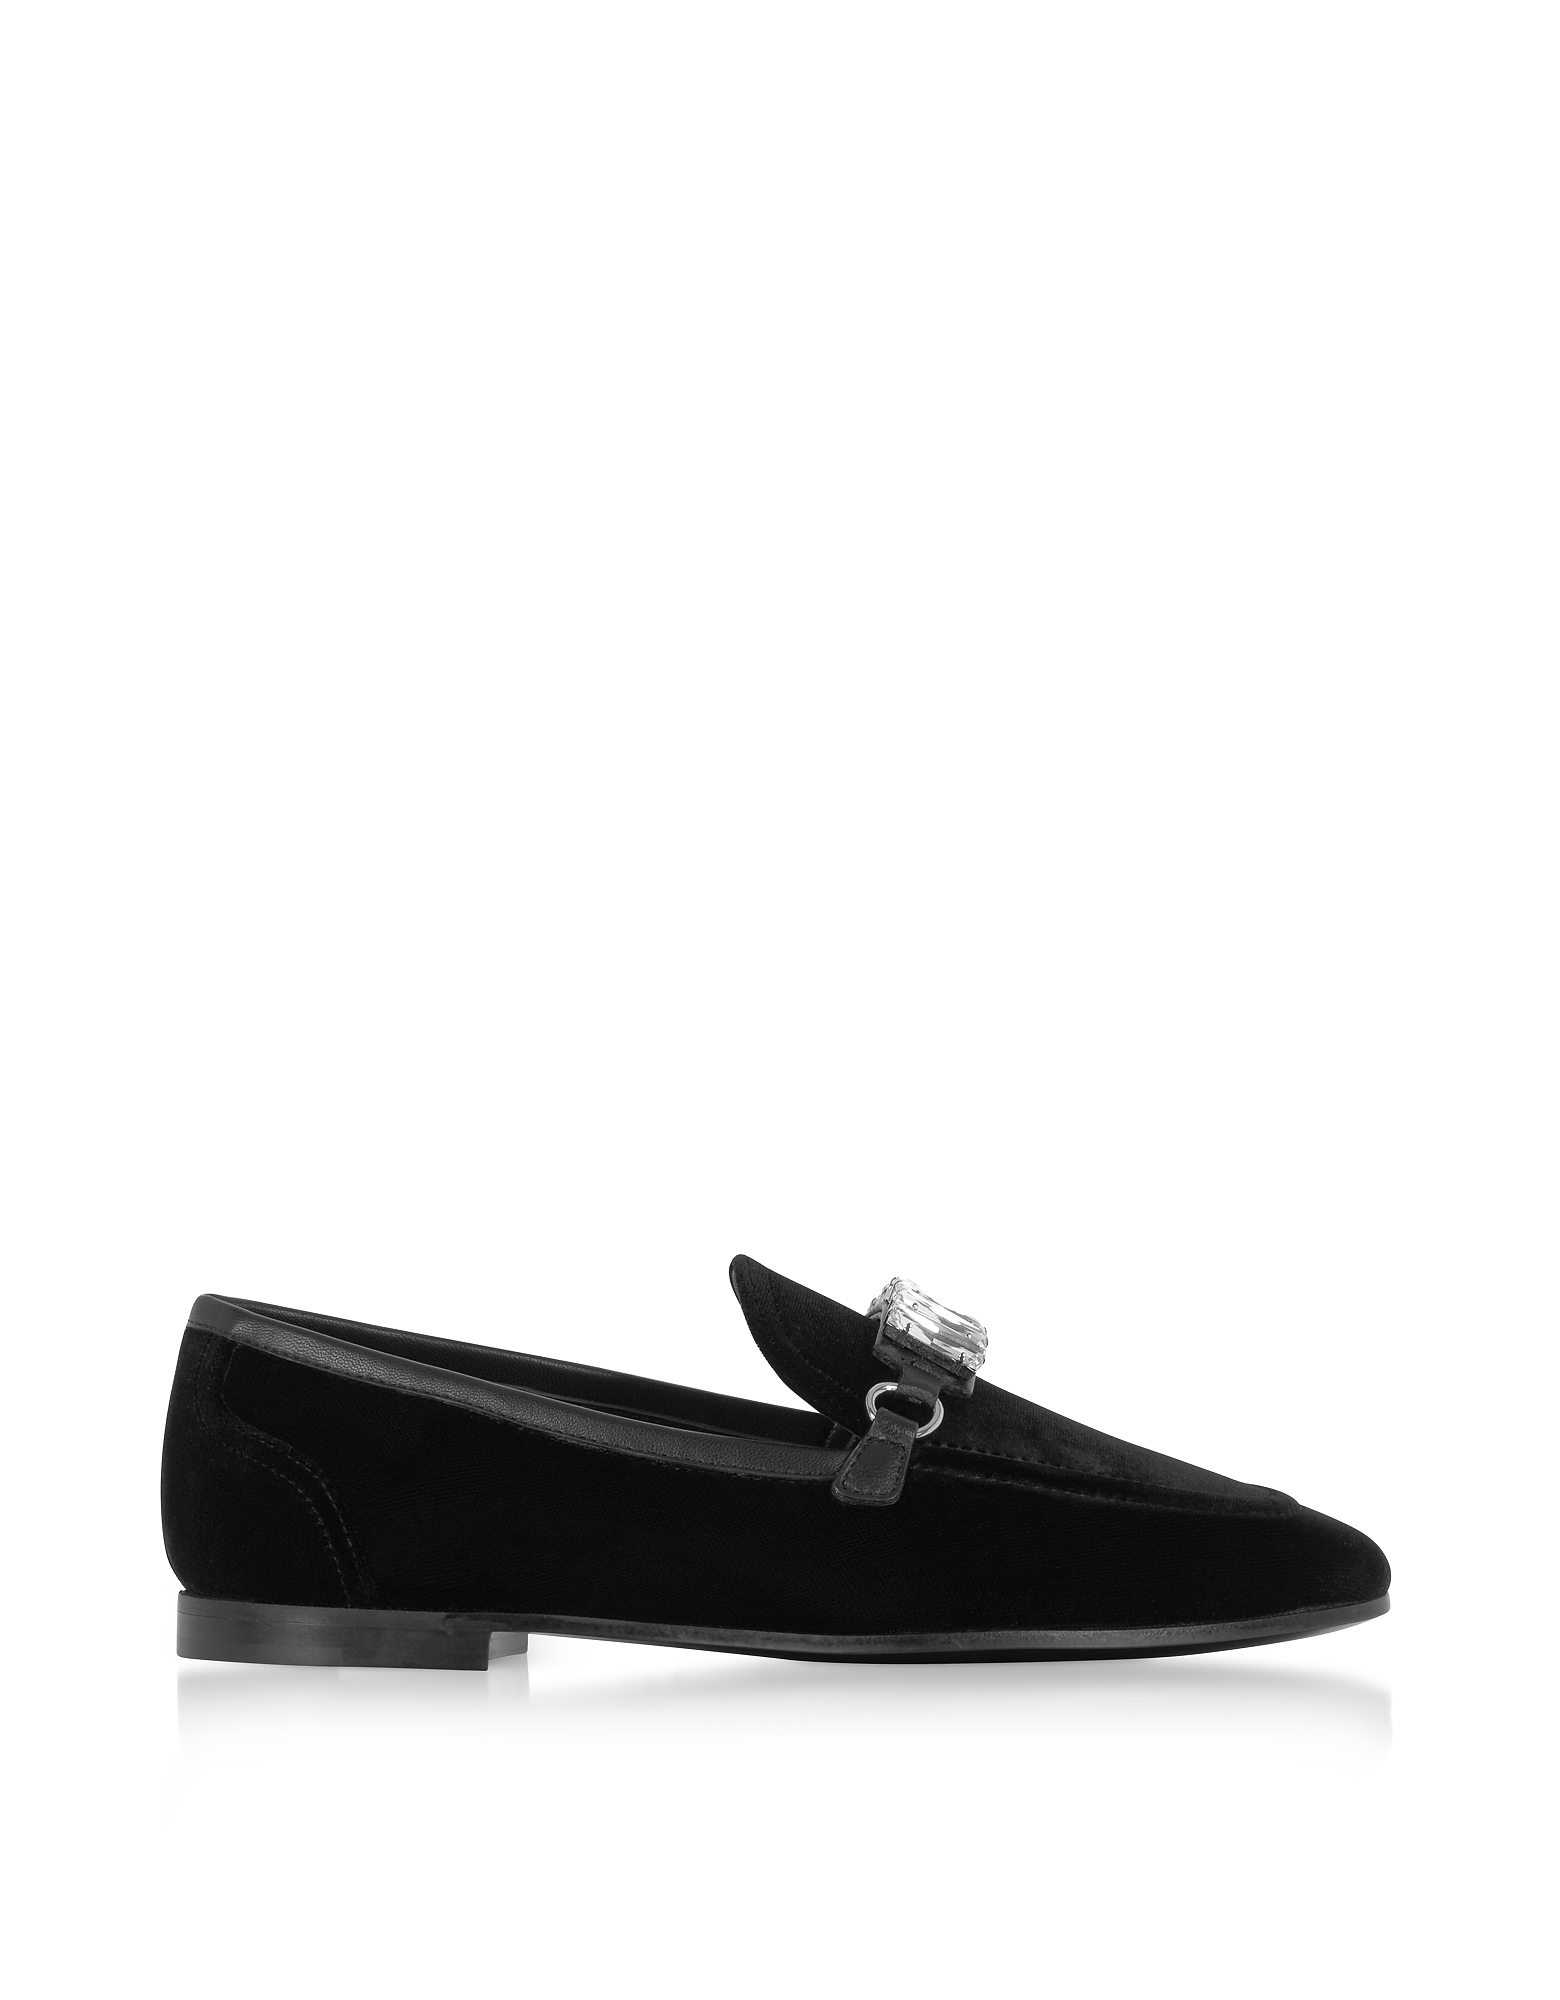 Giuseppe Zanotti Shoes, Black Velvet Loafers w/Crystals